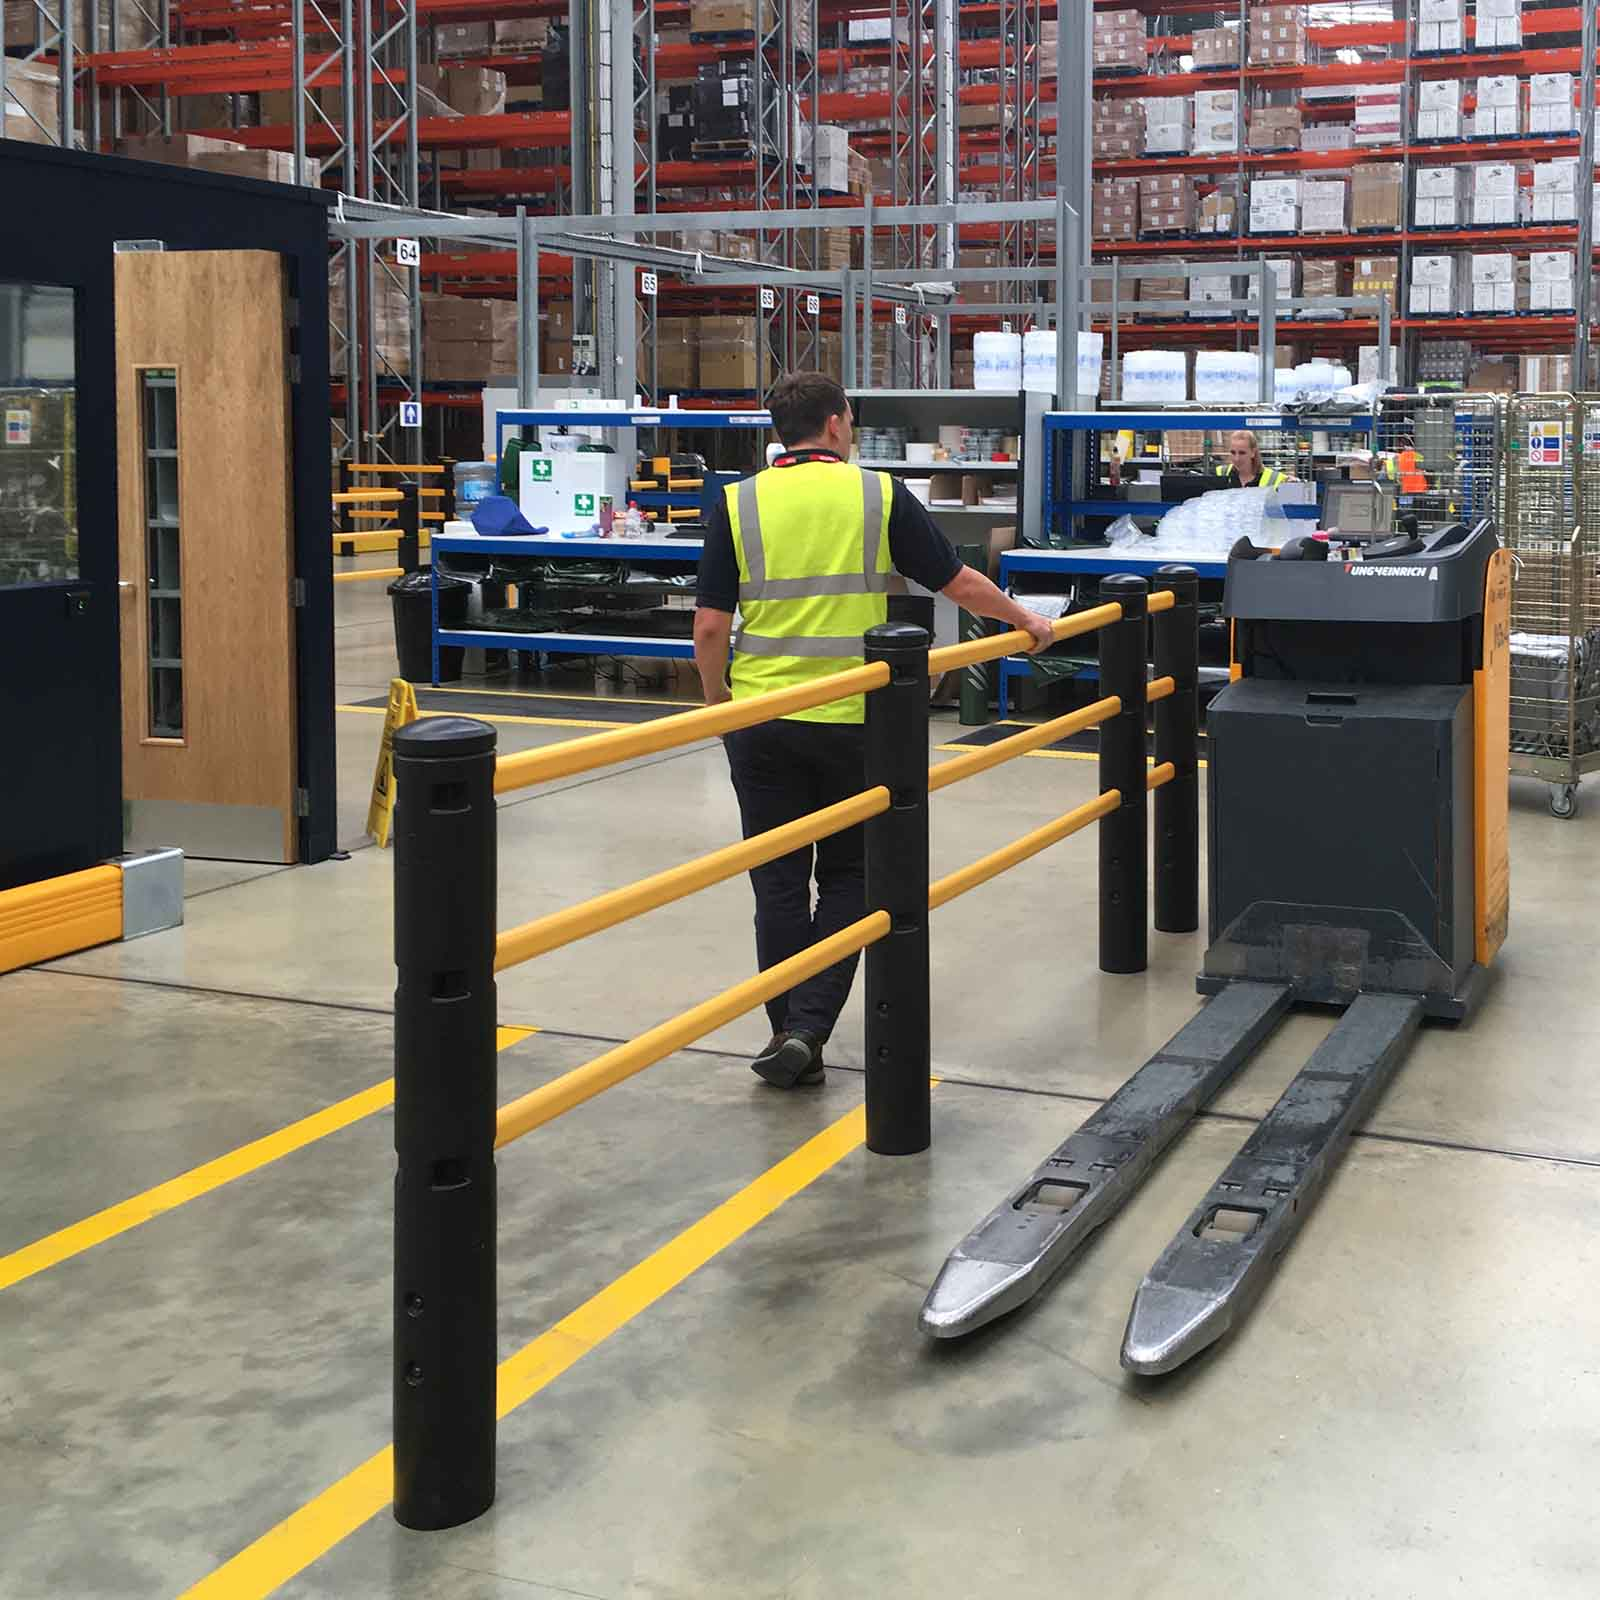 McCue Pedestrian Barrier Safety Protection in Warehouse